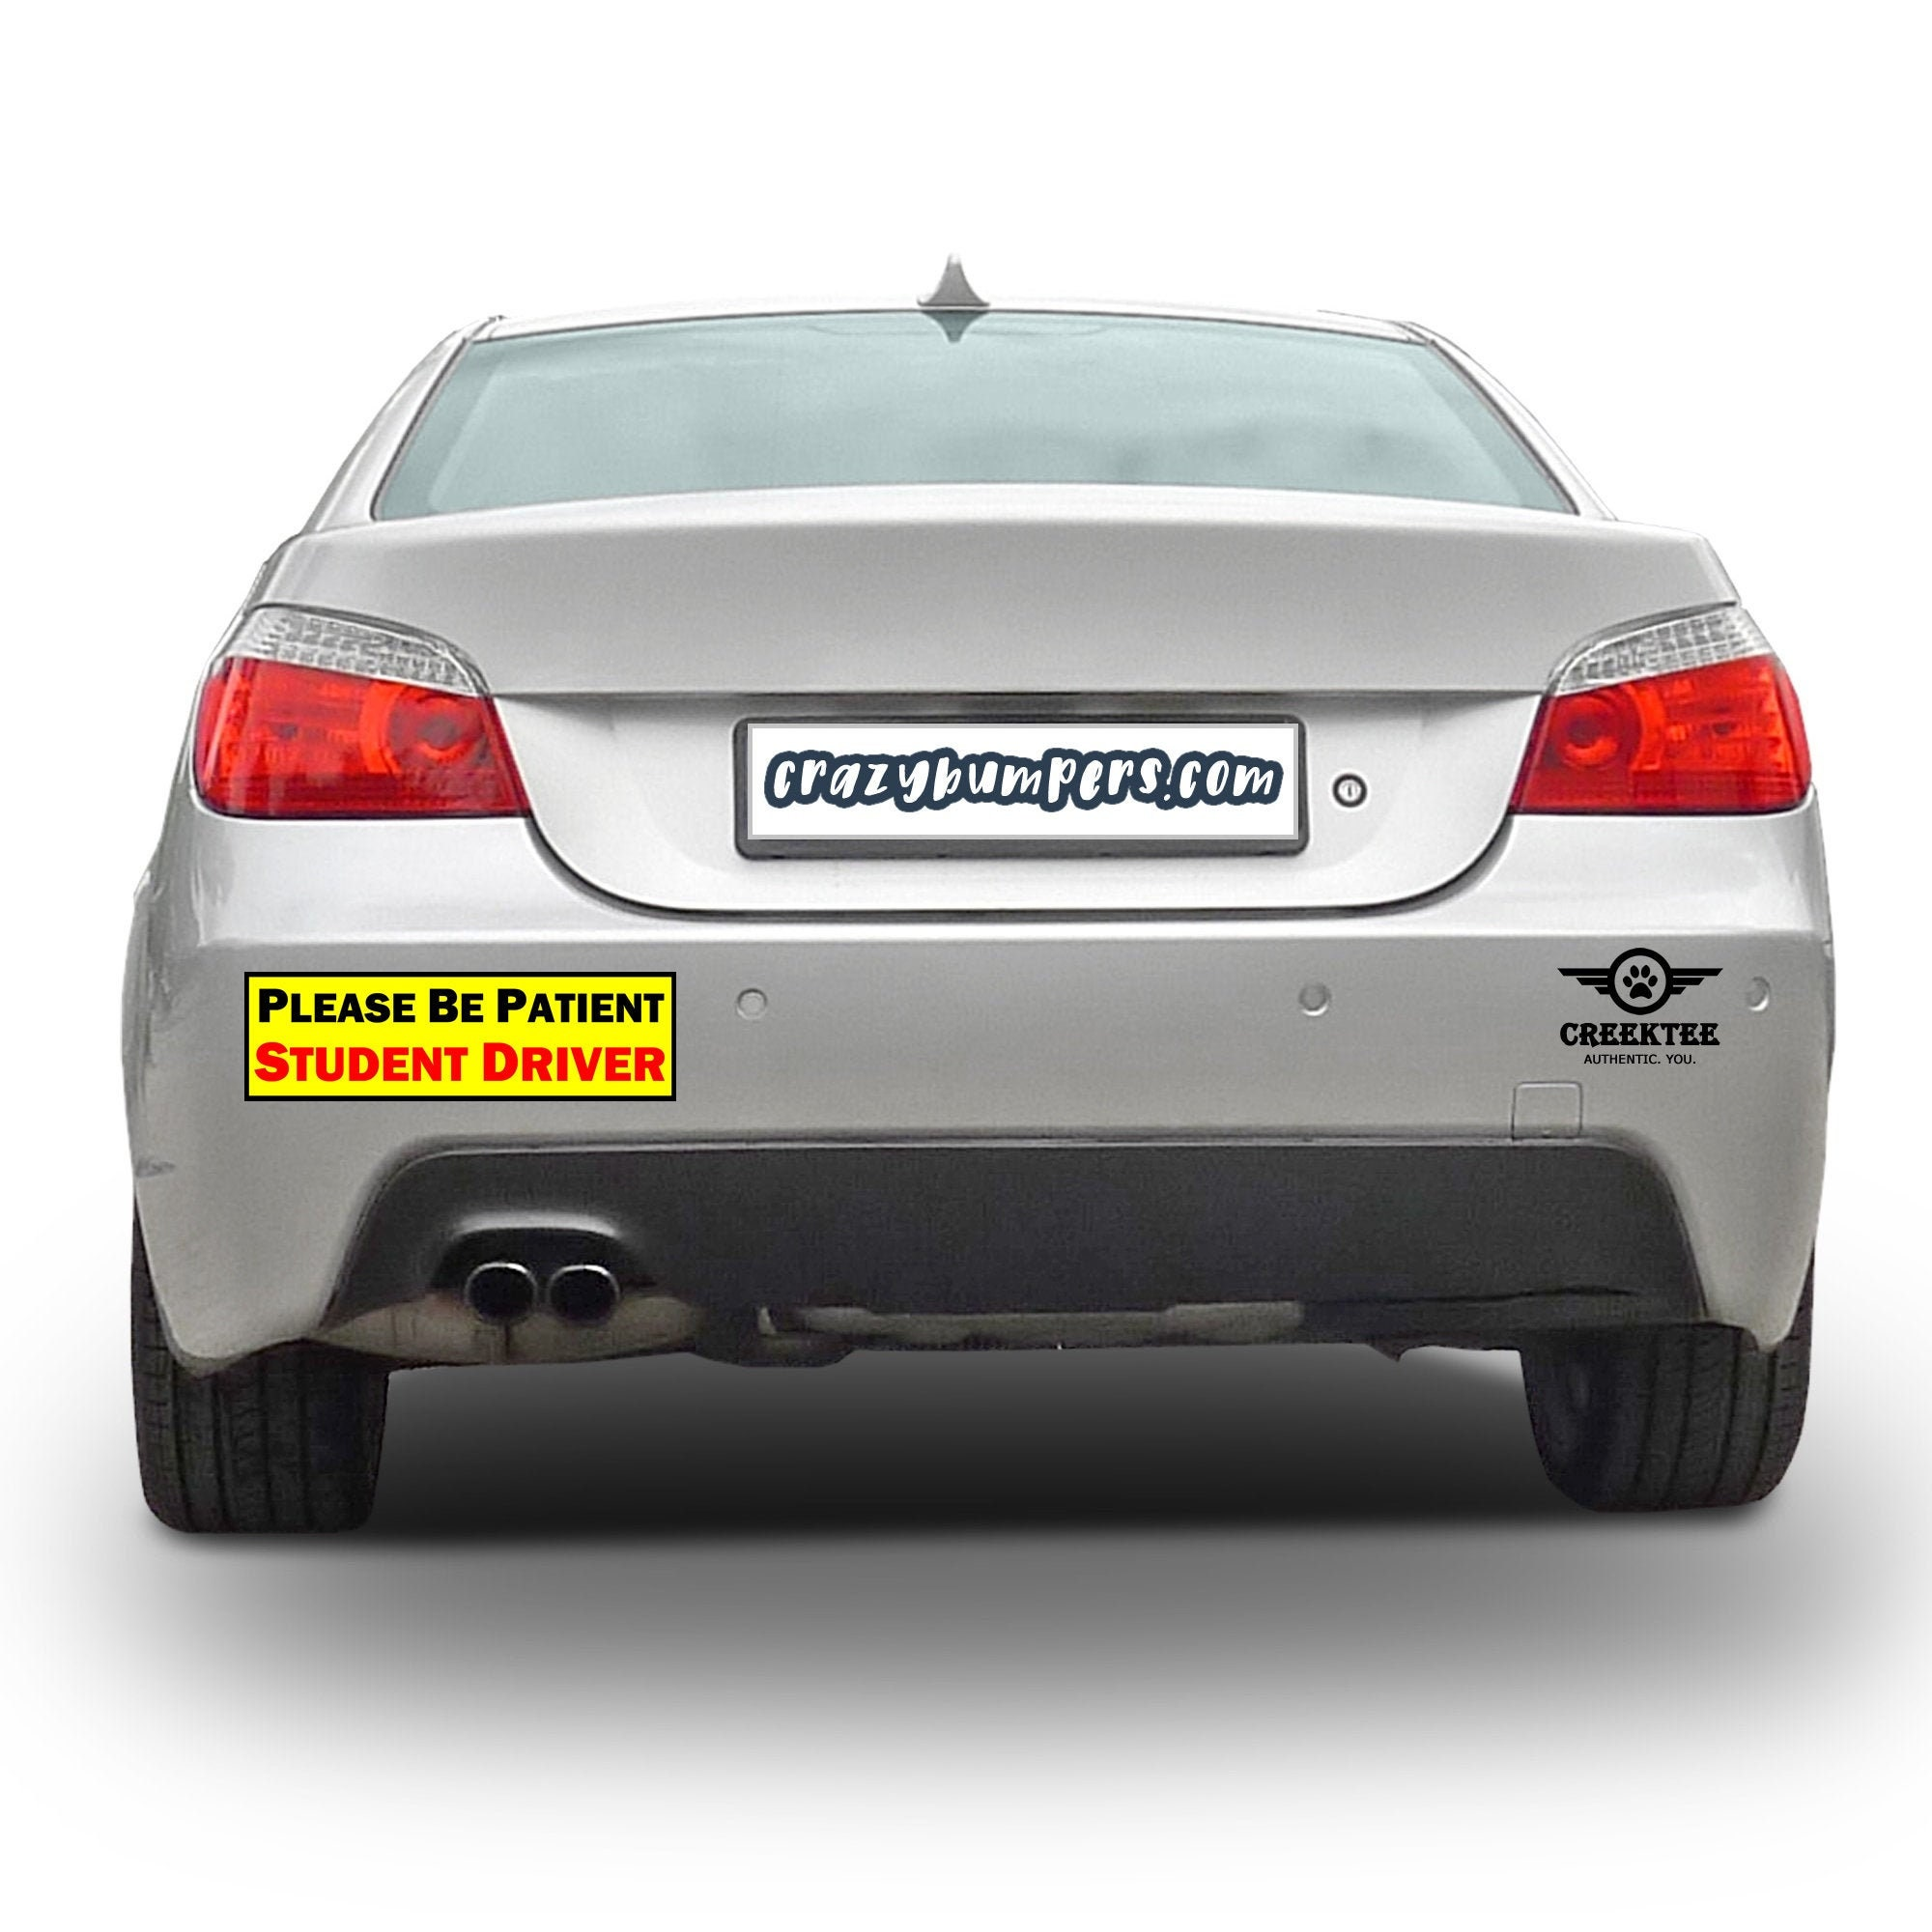 CAD$7.99 - Please Be Patient Student Driver Bumper Sticker 10 x 3 Bumper Sticker or Magnetic Bumper Sticker Available